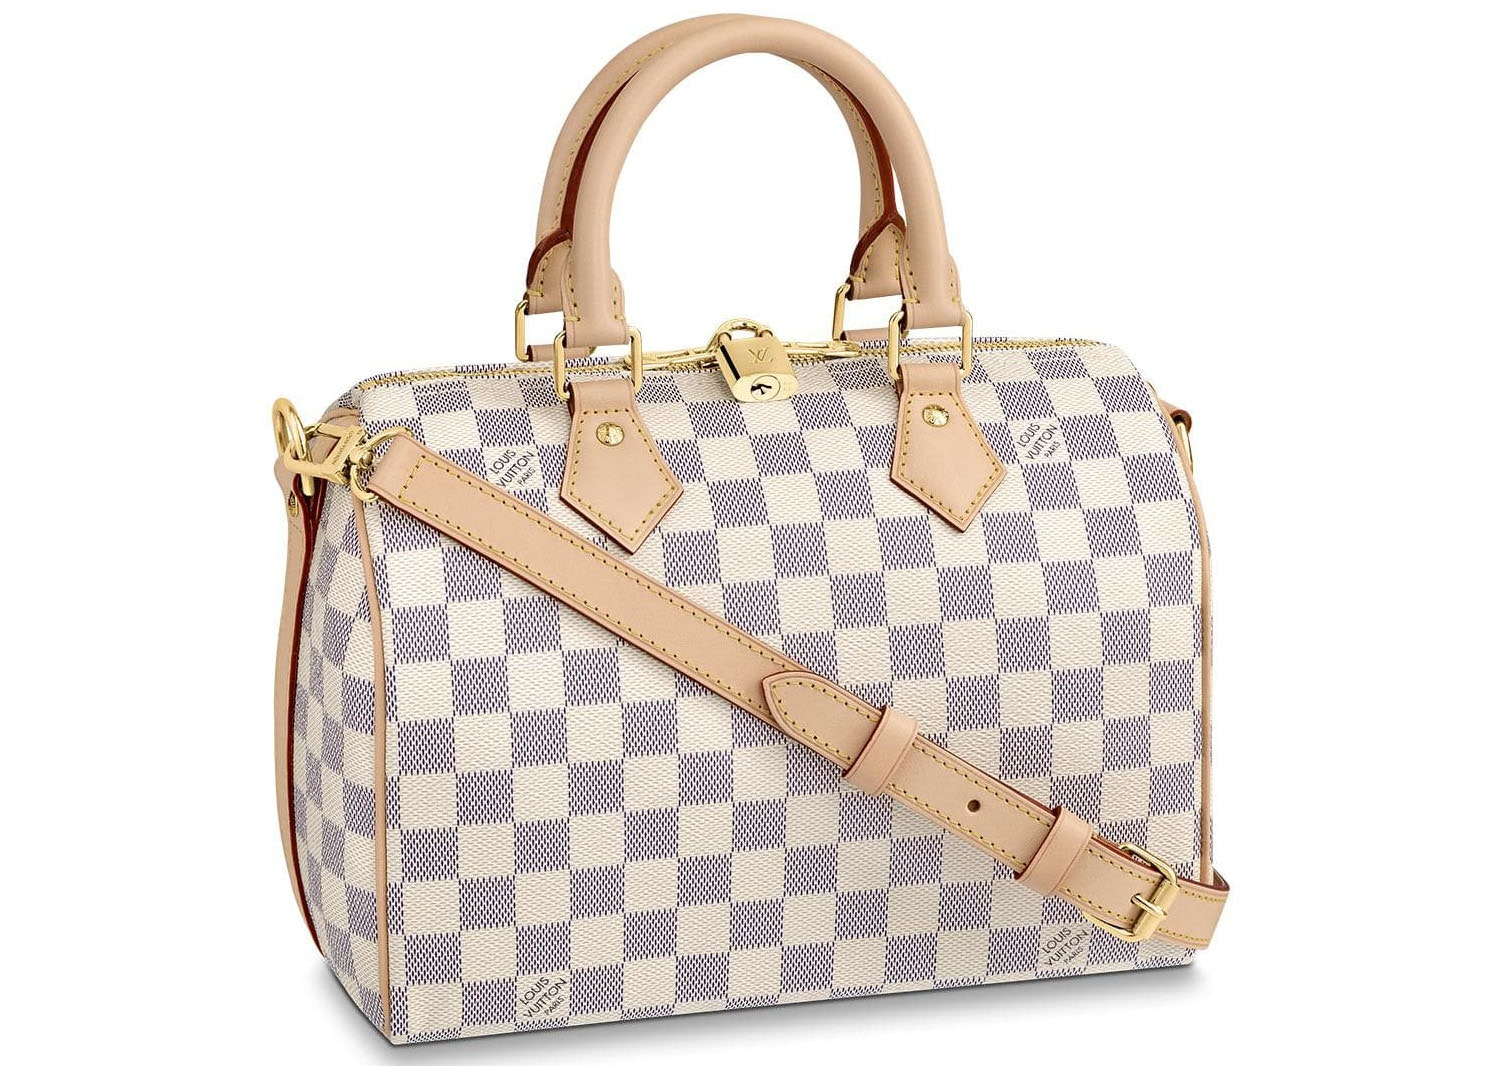 Louis Vuitton Speedy Bandouliere Damier Azur 25 White